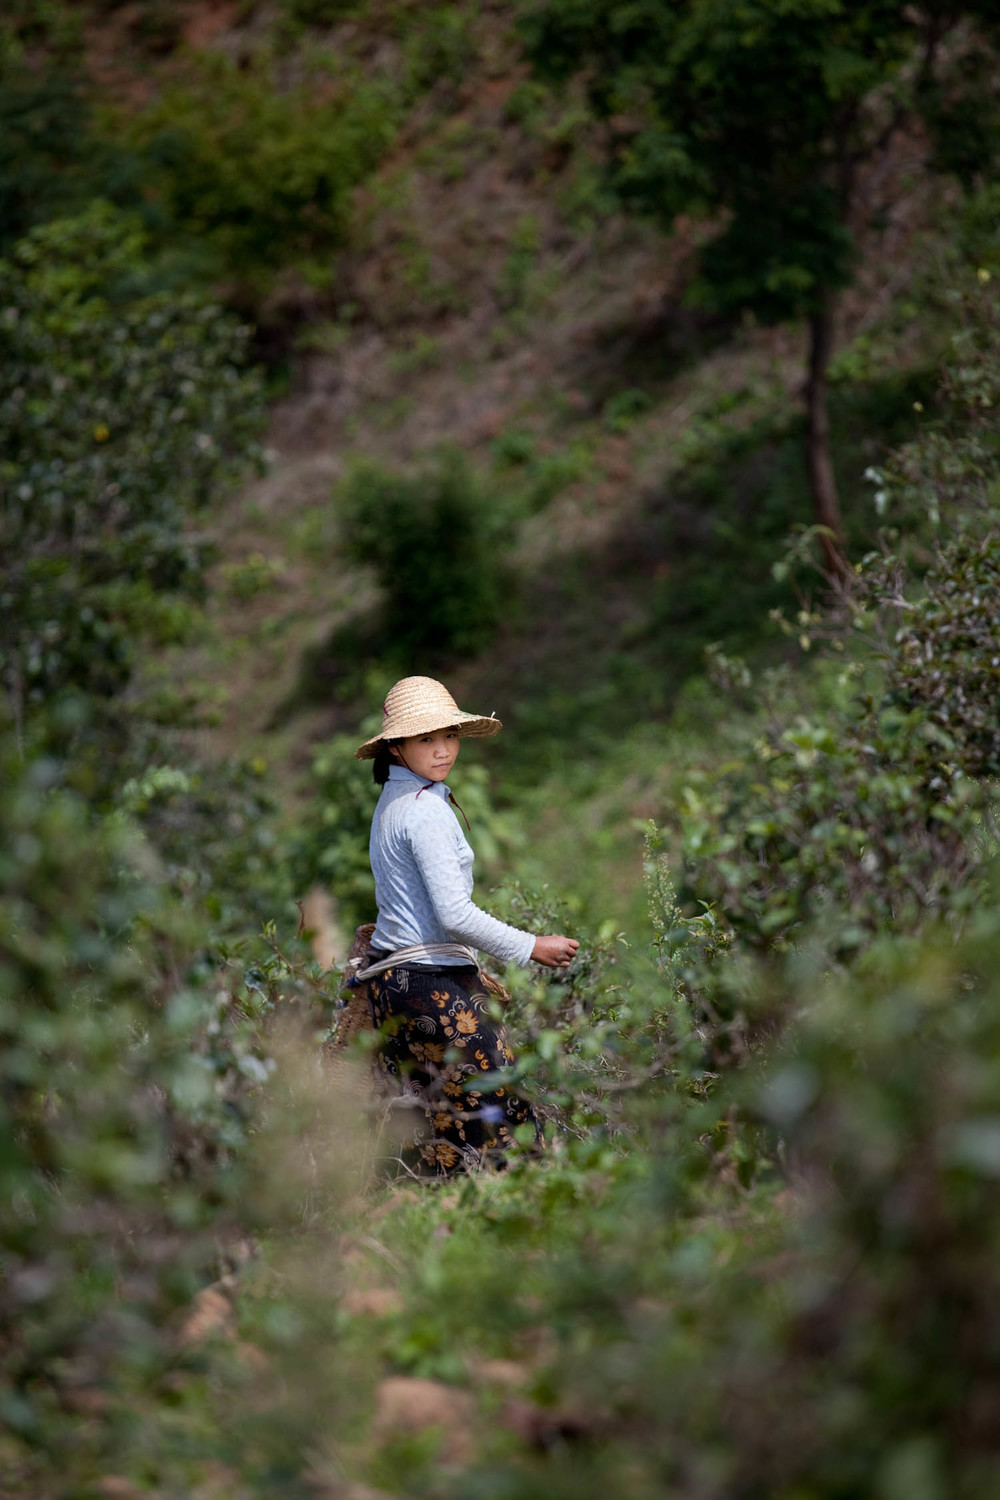 Harvester-portrait-villager-green-tea-picker-Taryaw-kalaw-myanmar-burma-asia-travel